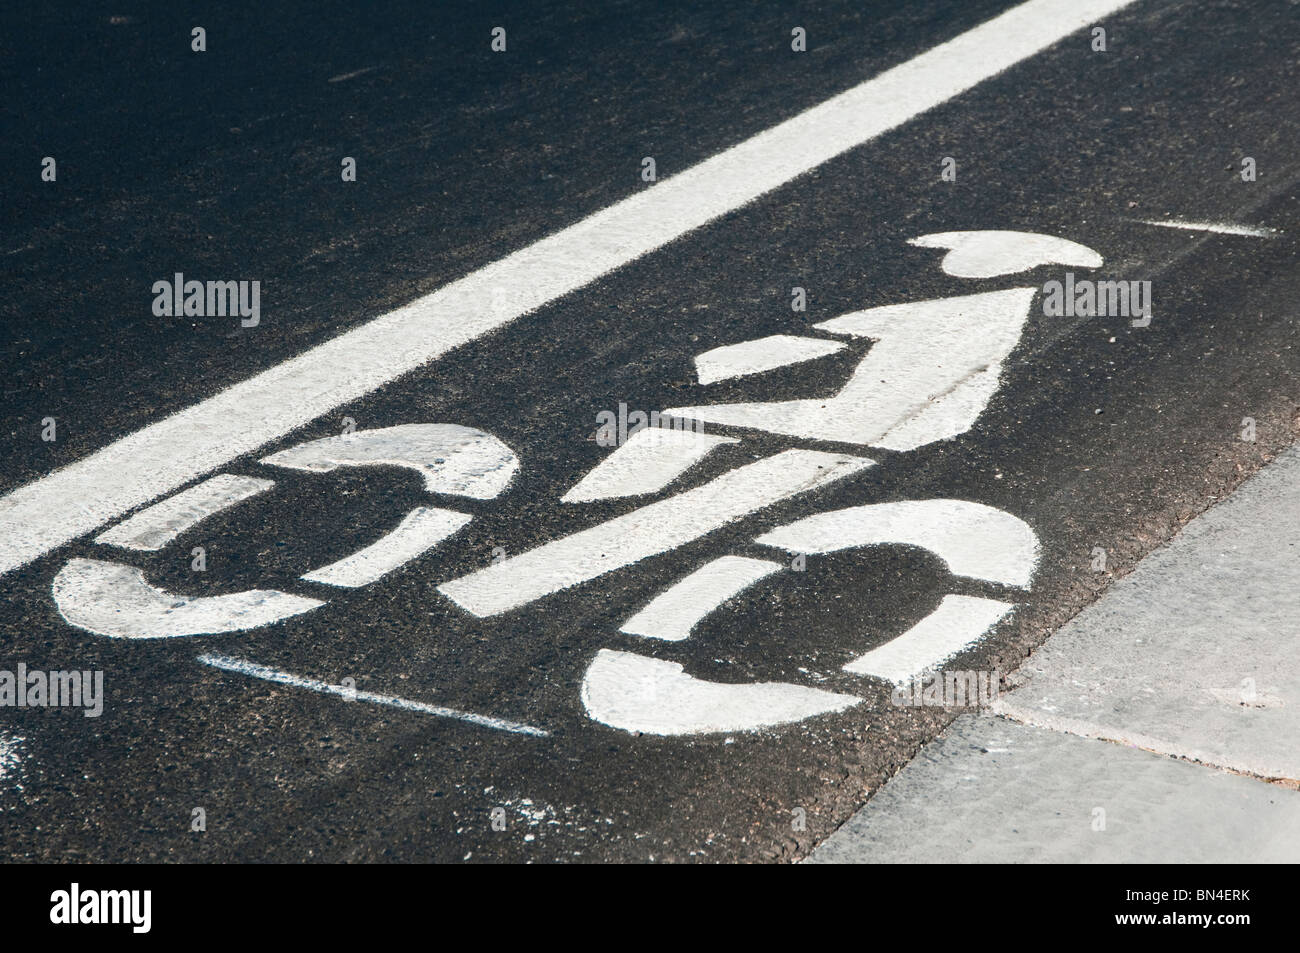 A bike lane is indicated by painted markings on a city street. - Stock Image